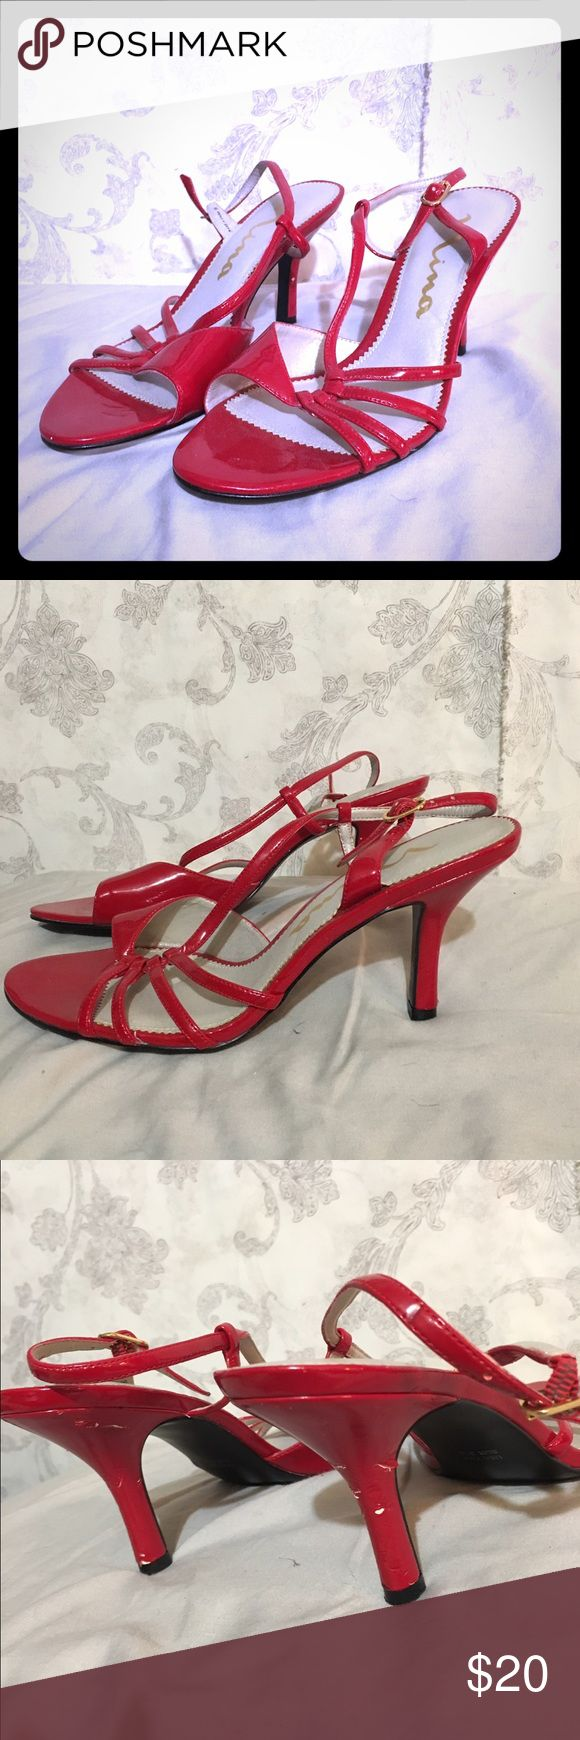 Red strappy high heels. Red strappy high heels size 7 1/2. There is some scuffing on the heel which can be seen in the photos. Shoes Heels